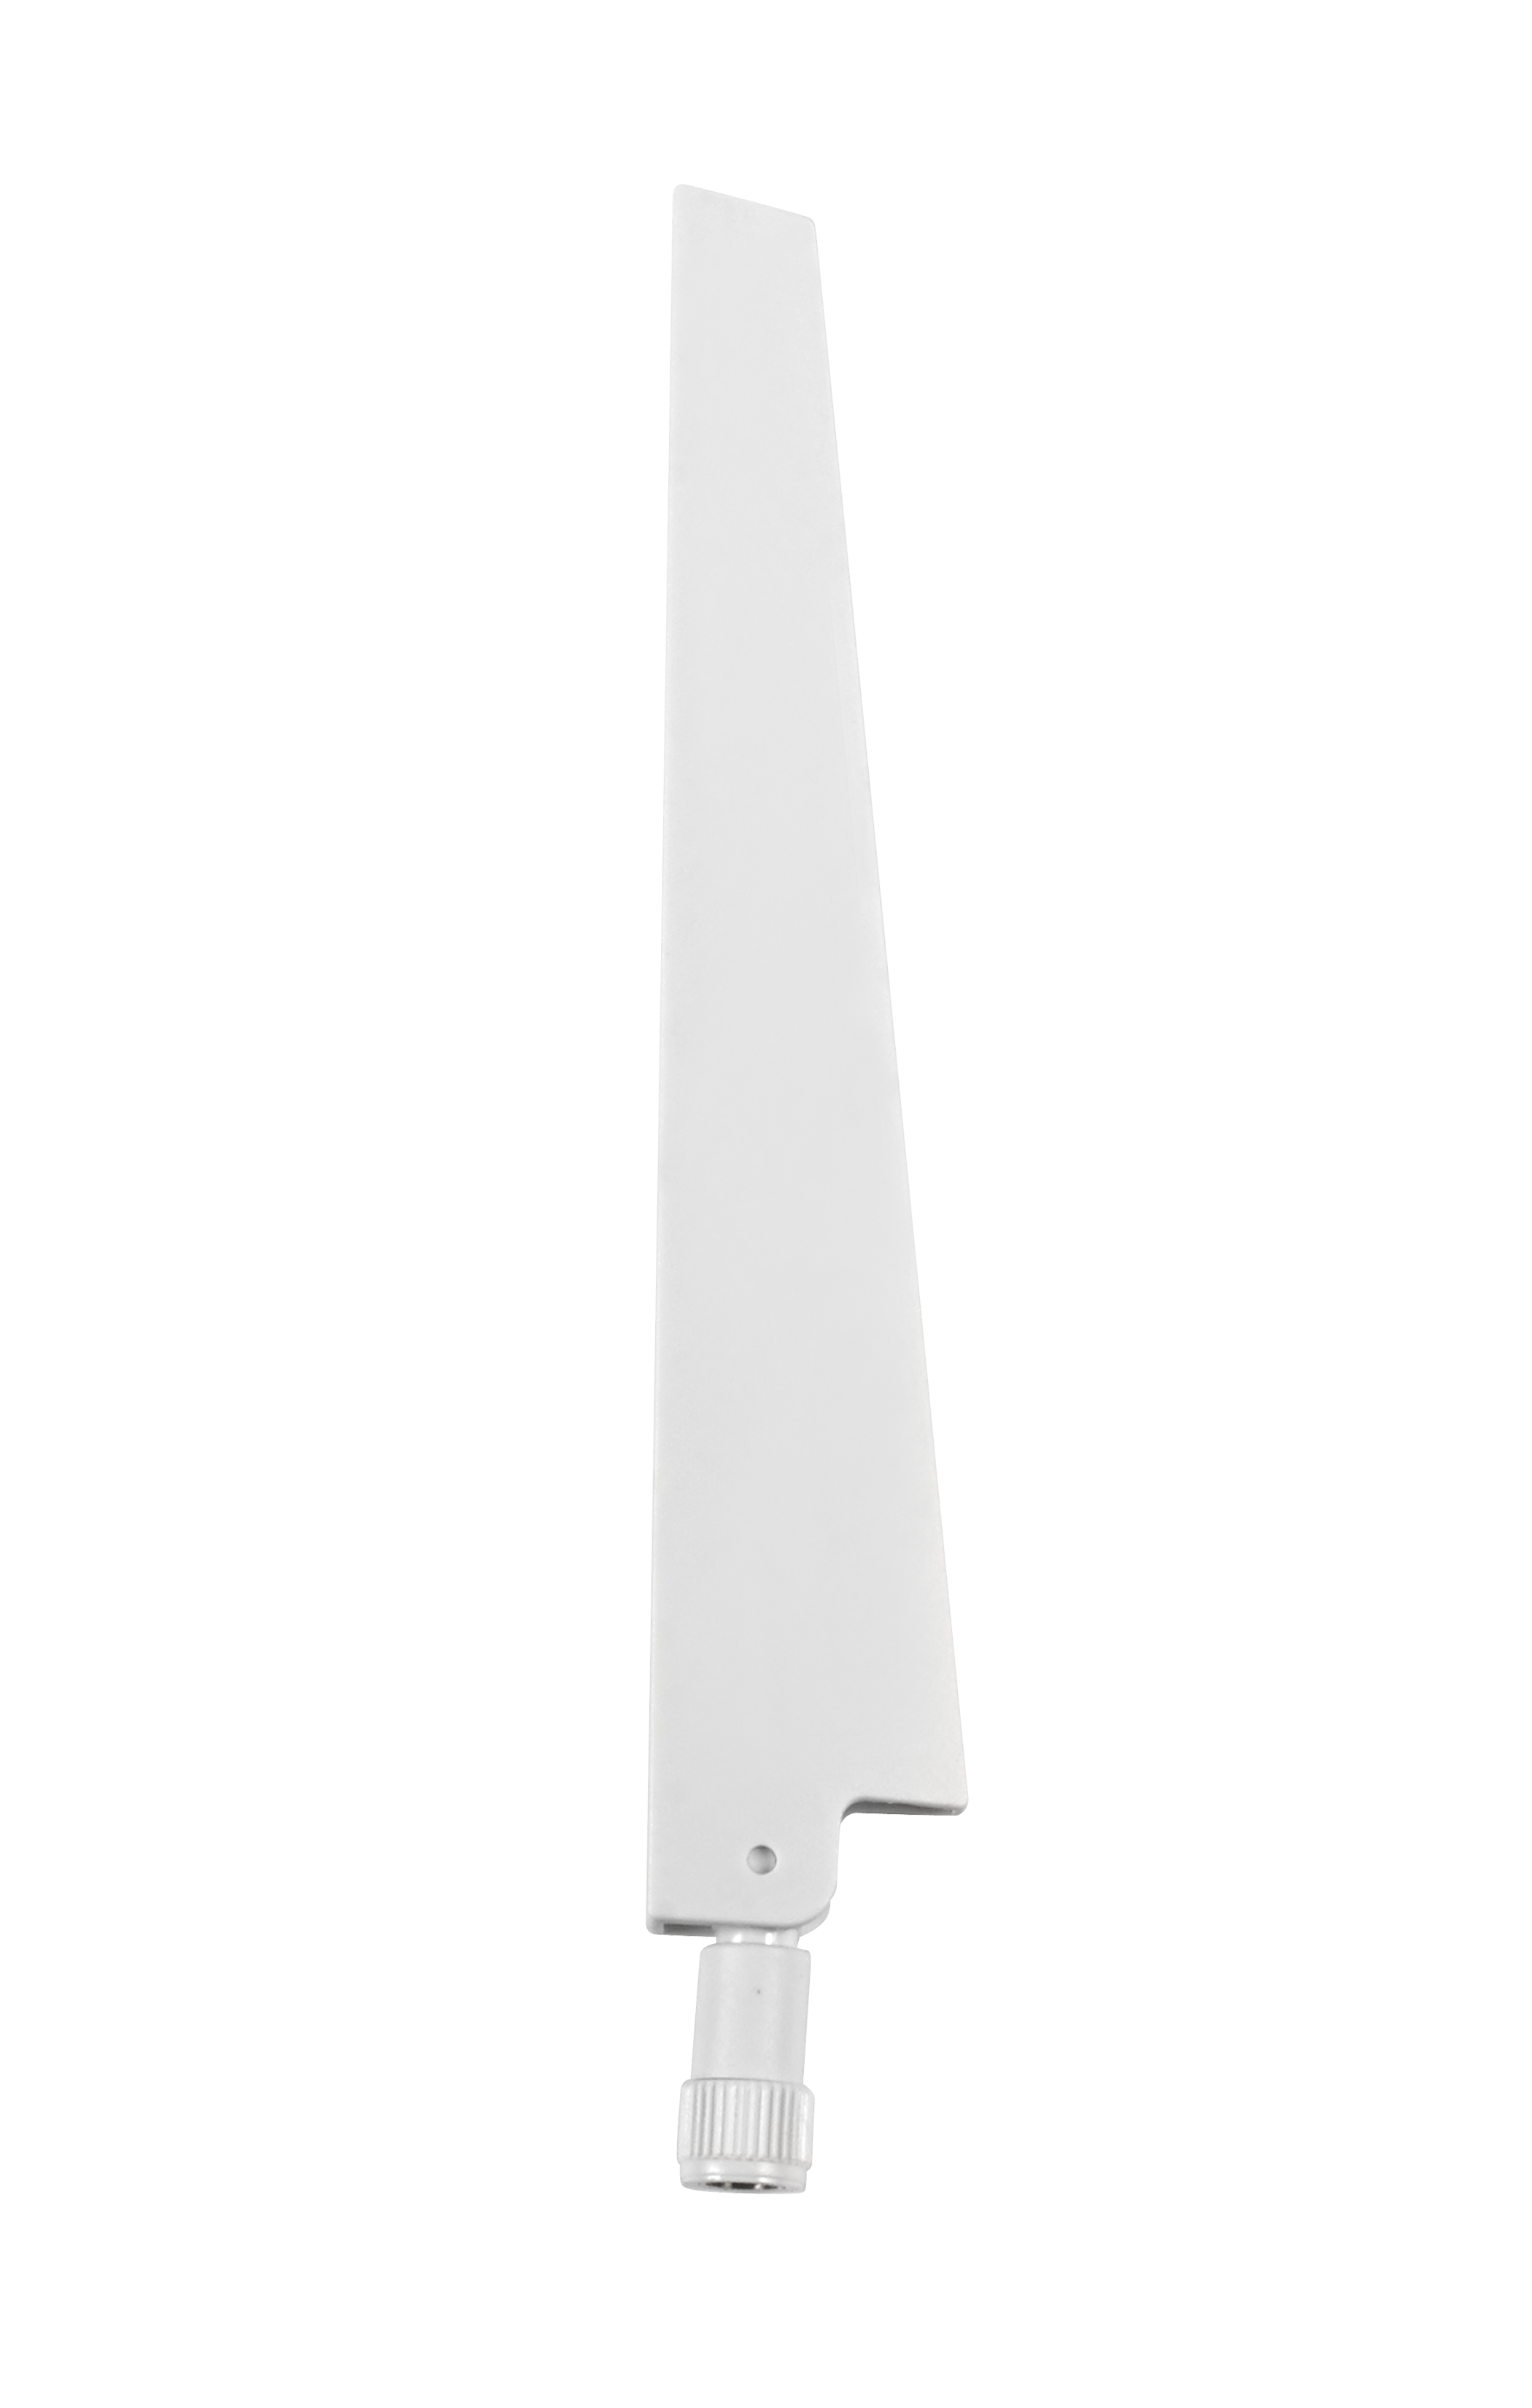 NETGEAR Indoor Dual Band Omni Antenna